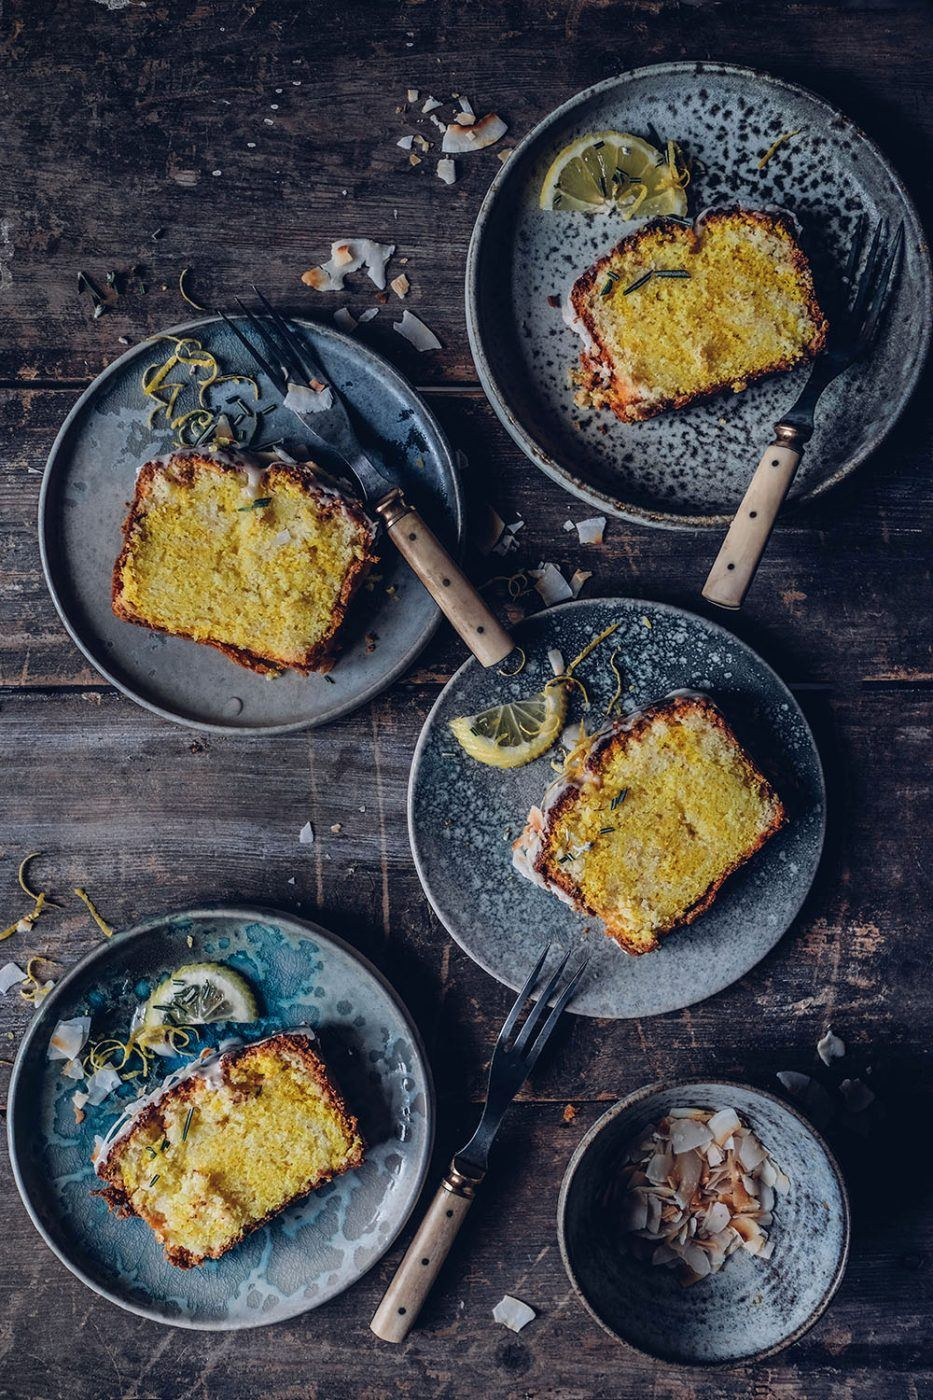 Image for Easy and Delicious Gluten-free Lemon Cake with Rosemary